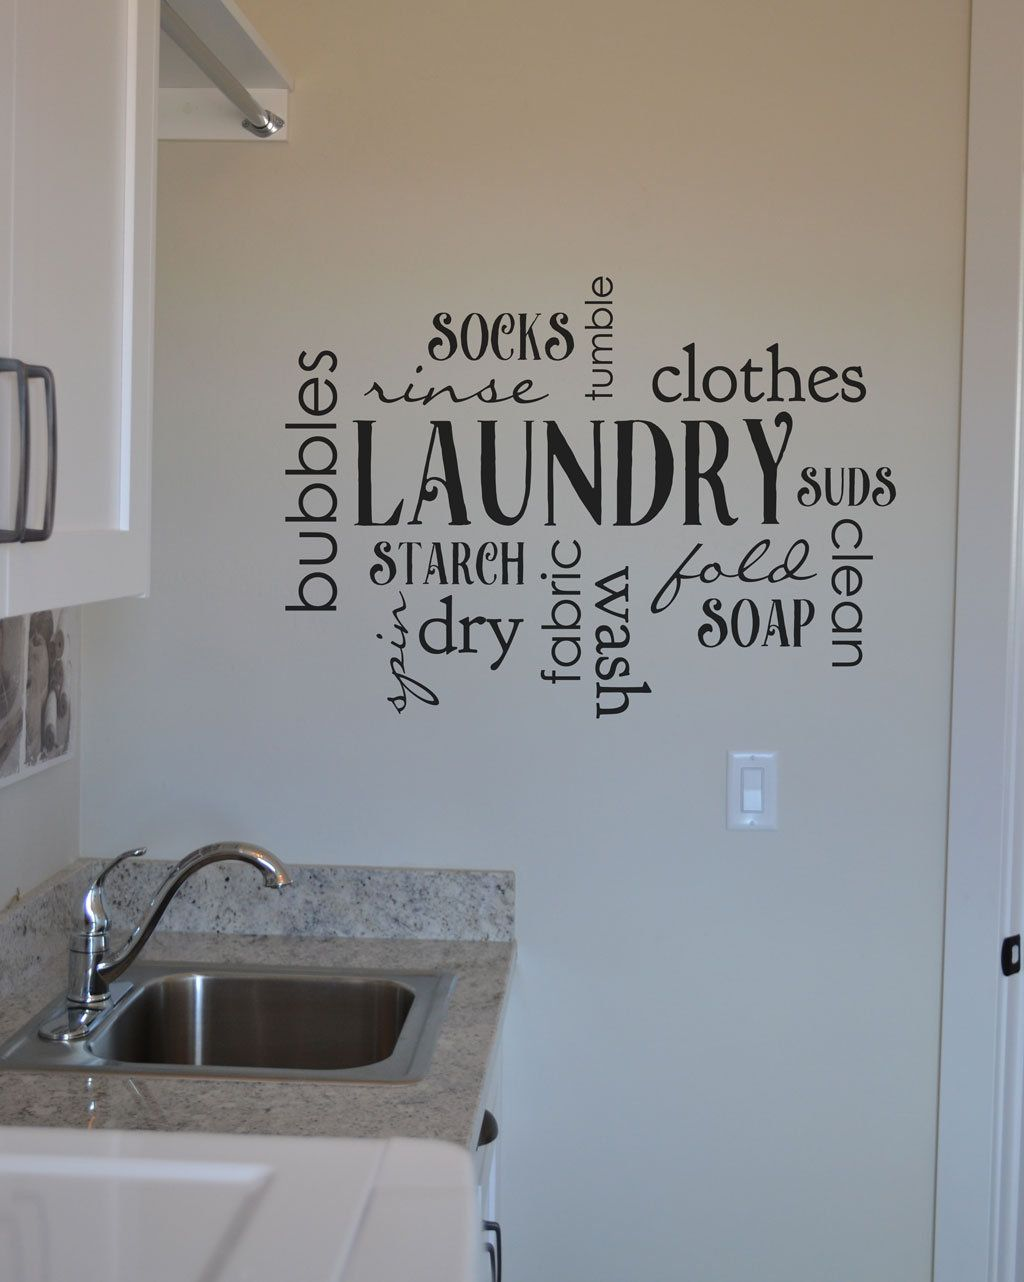 Laundry Decal Collage Of Lots Of Laundry Terms Vinyl Decal Wall Laundry Home Decor Sticker Bm644 Wall Decals Laundry Laundry Room Decals Laundry Decals